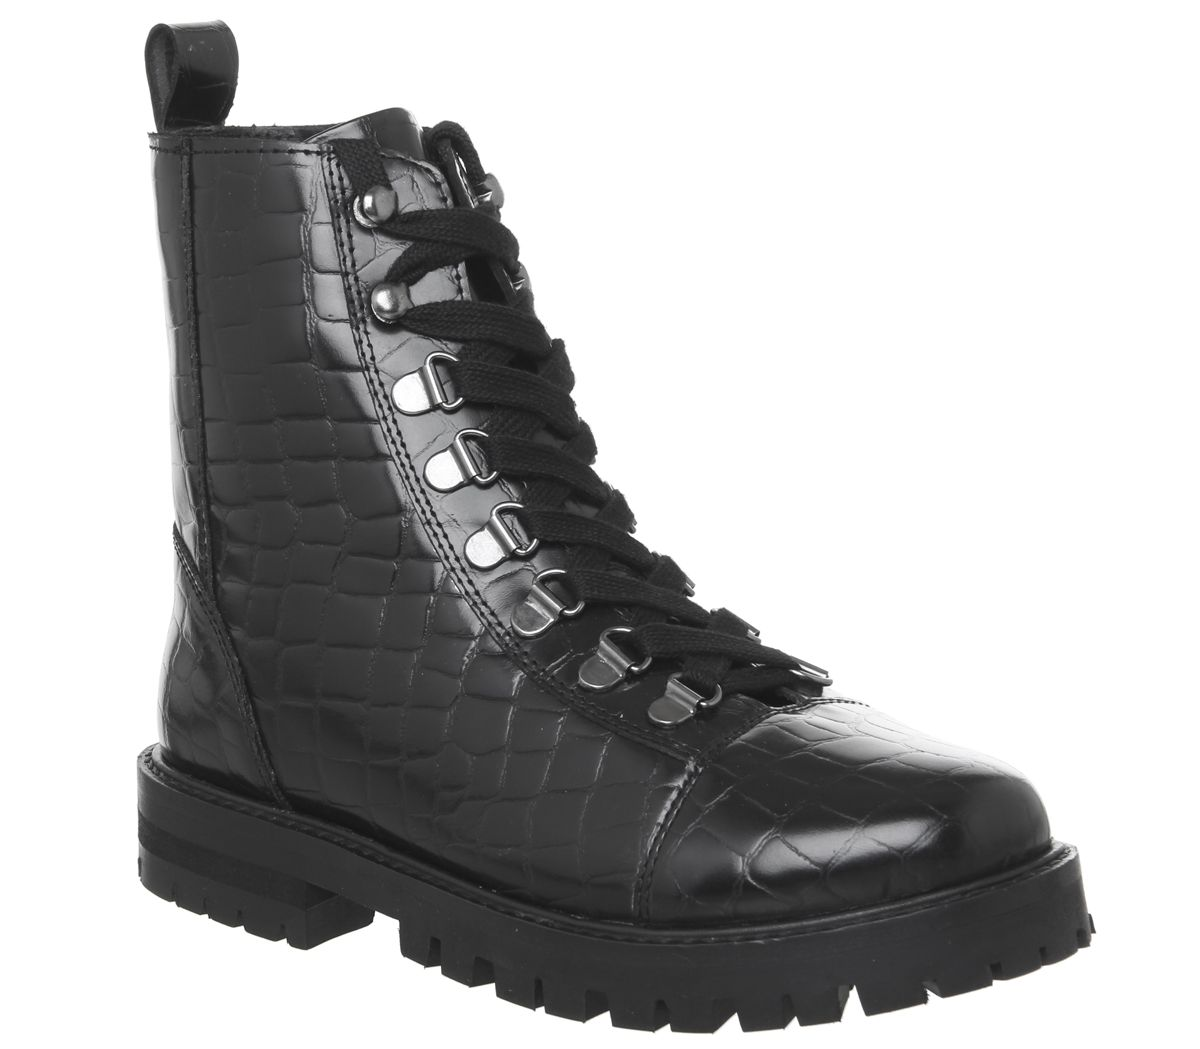 0310d033a0a Details about Womens Office Ansel Hiker Lace Up Boots Black Croc Leather  Boots